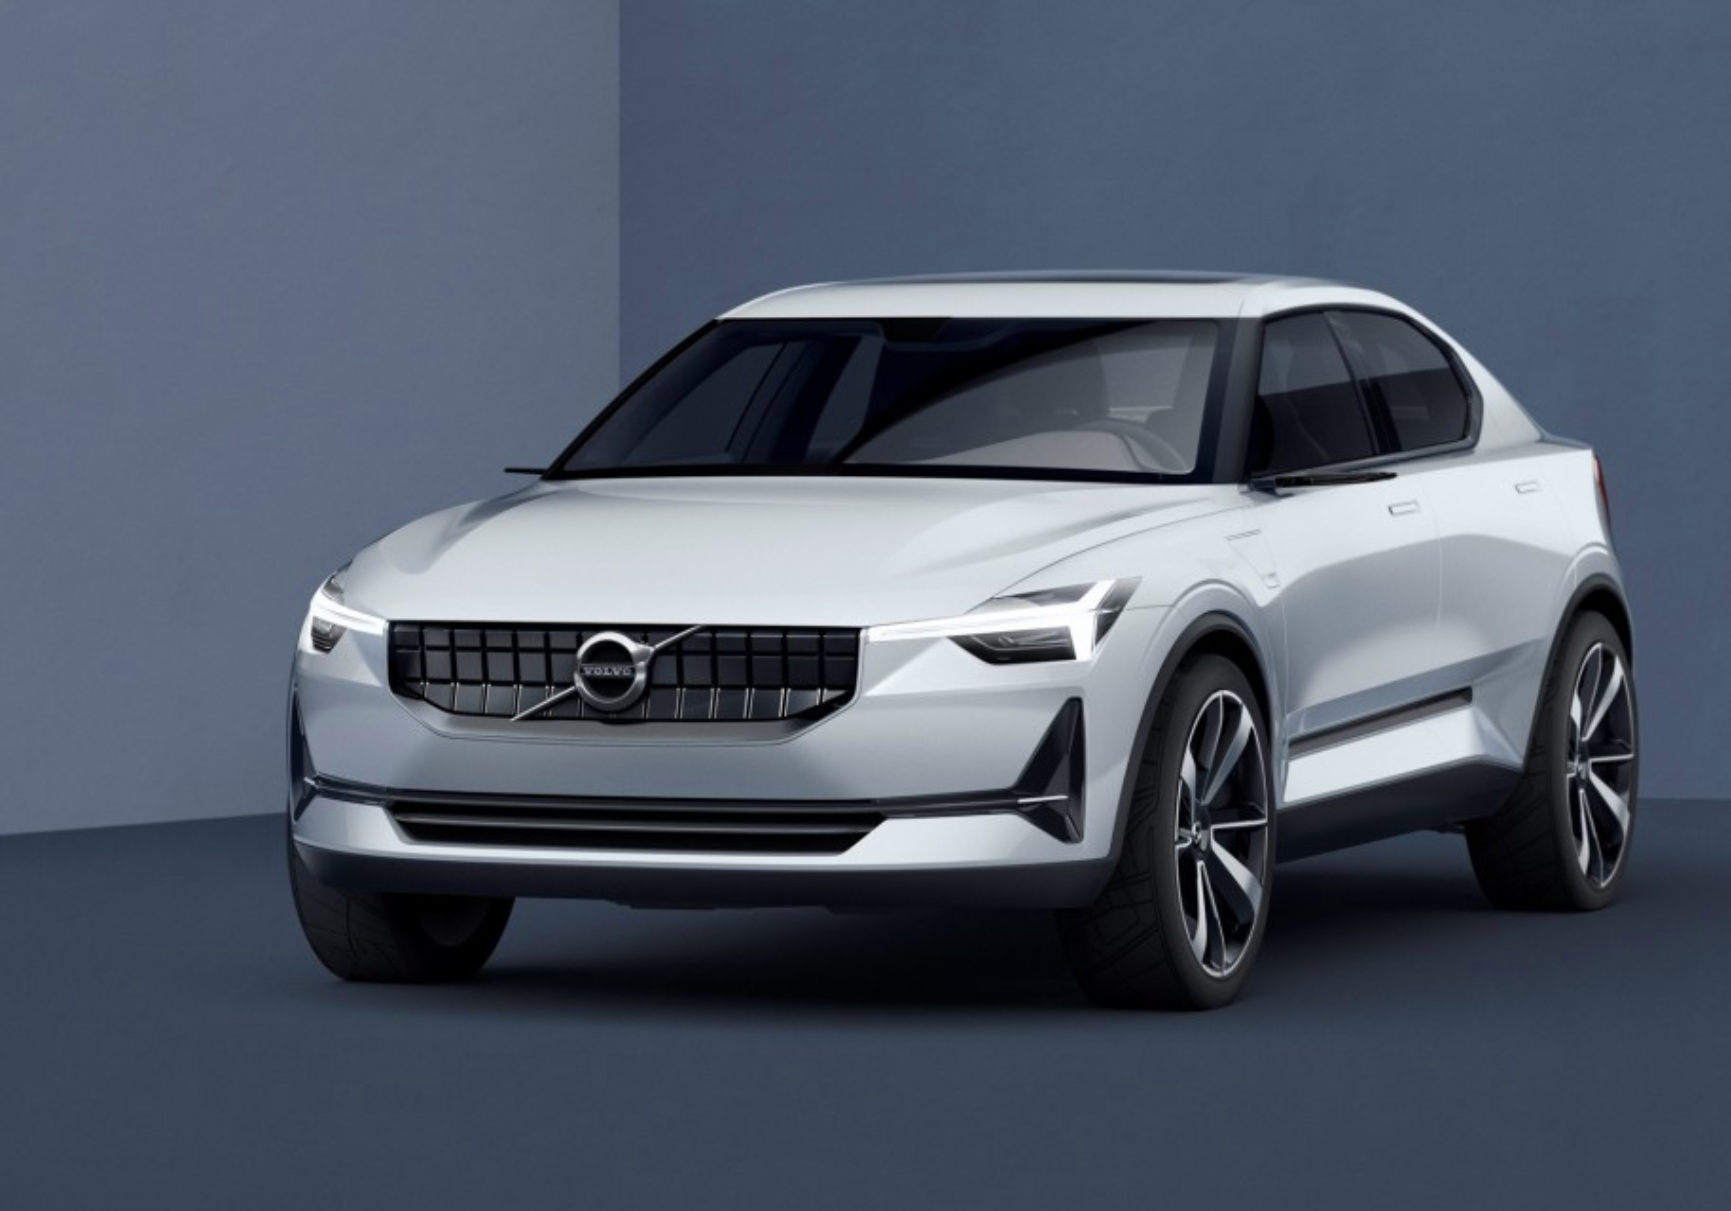 As Quoted By Auto Express Volvo S Head Of Research And Development Henrik Green Stated For Each Electric Car We Will Typically Have At Least Two